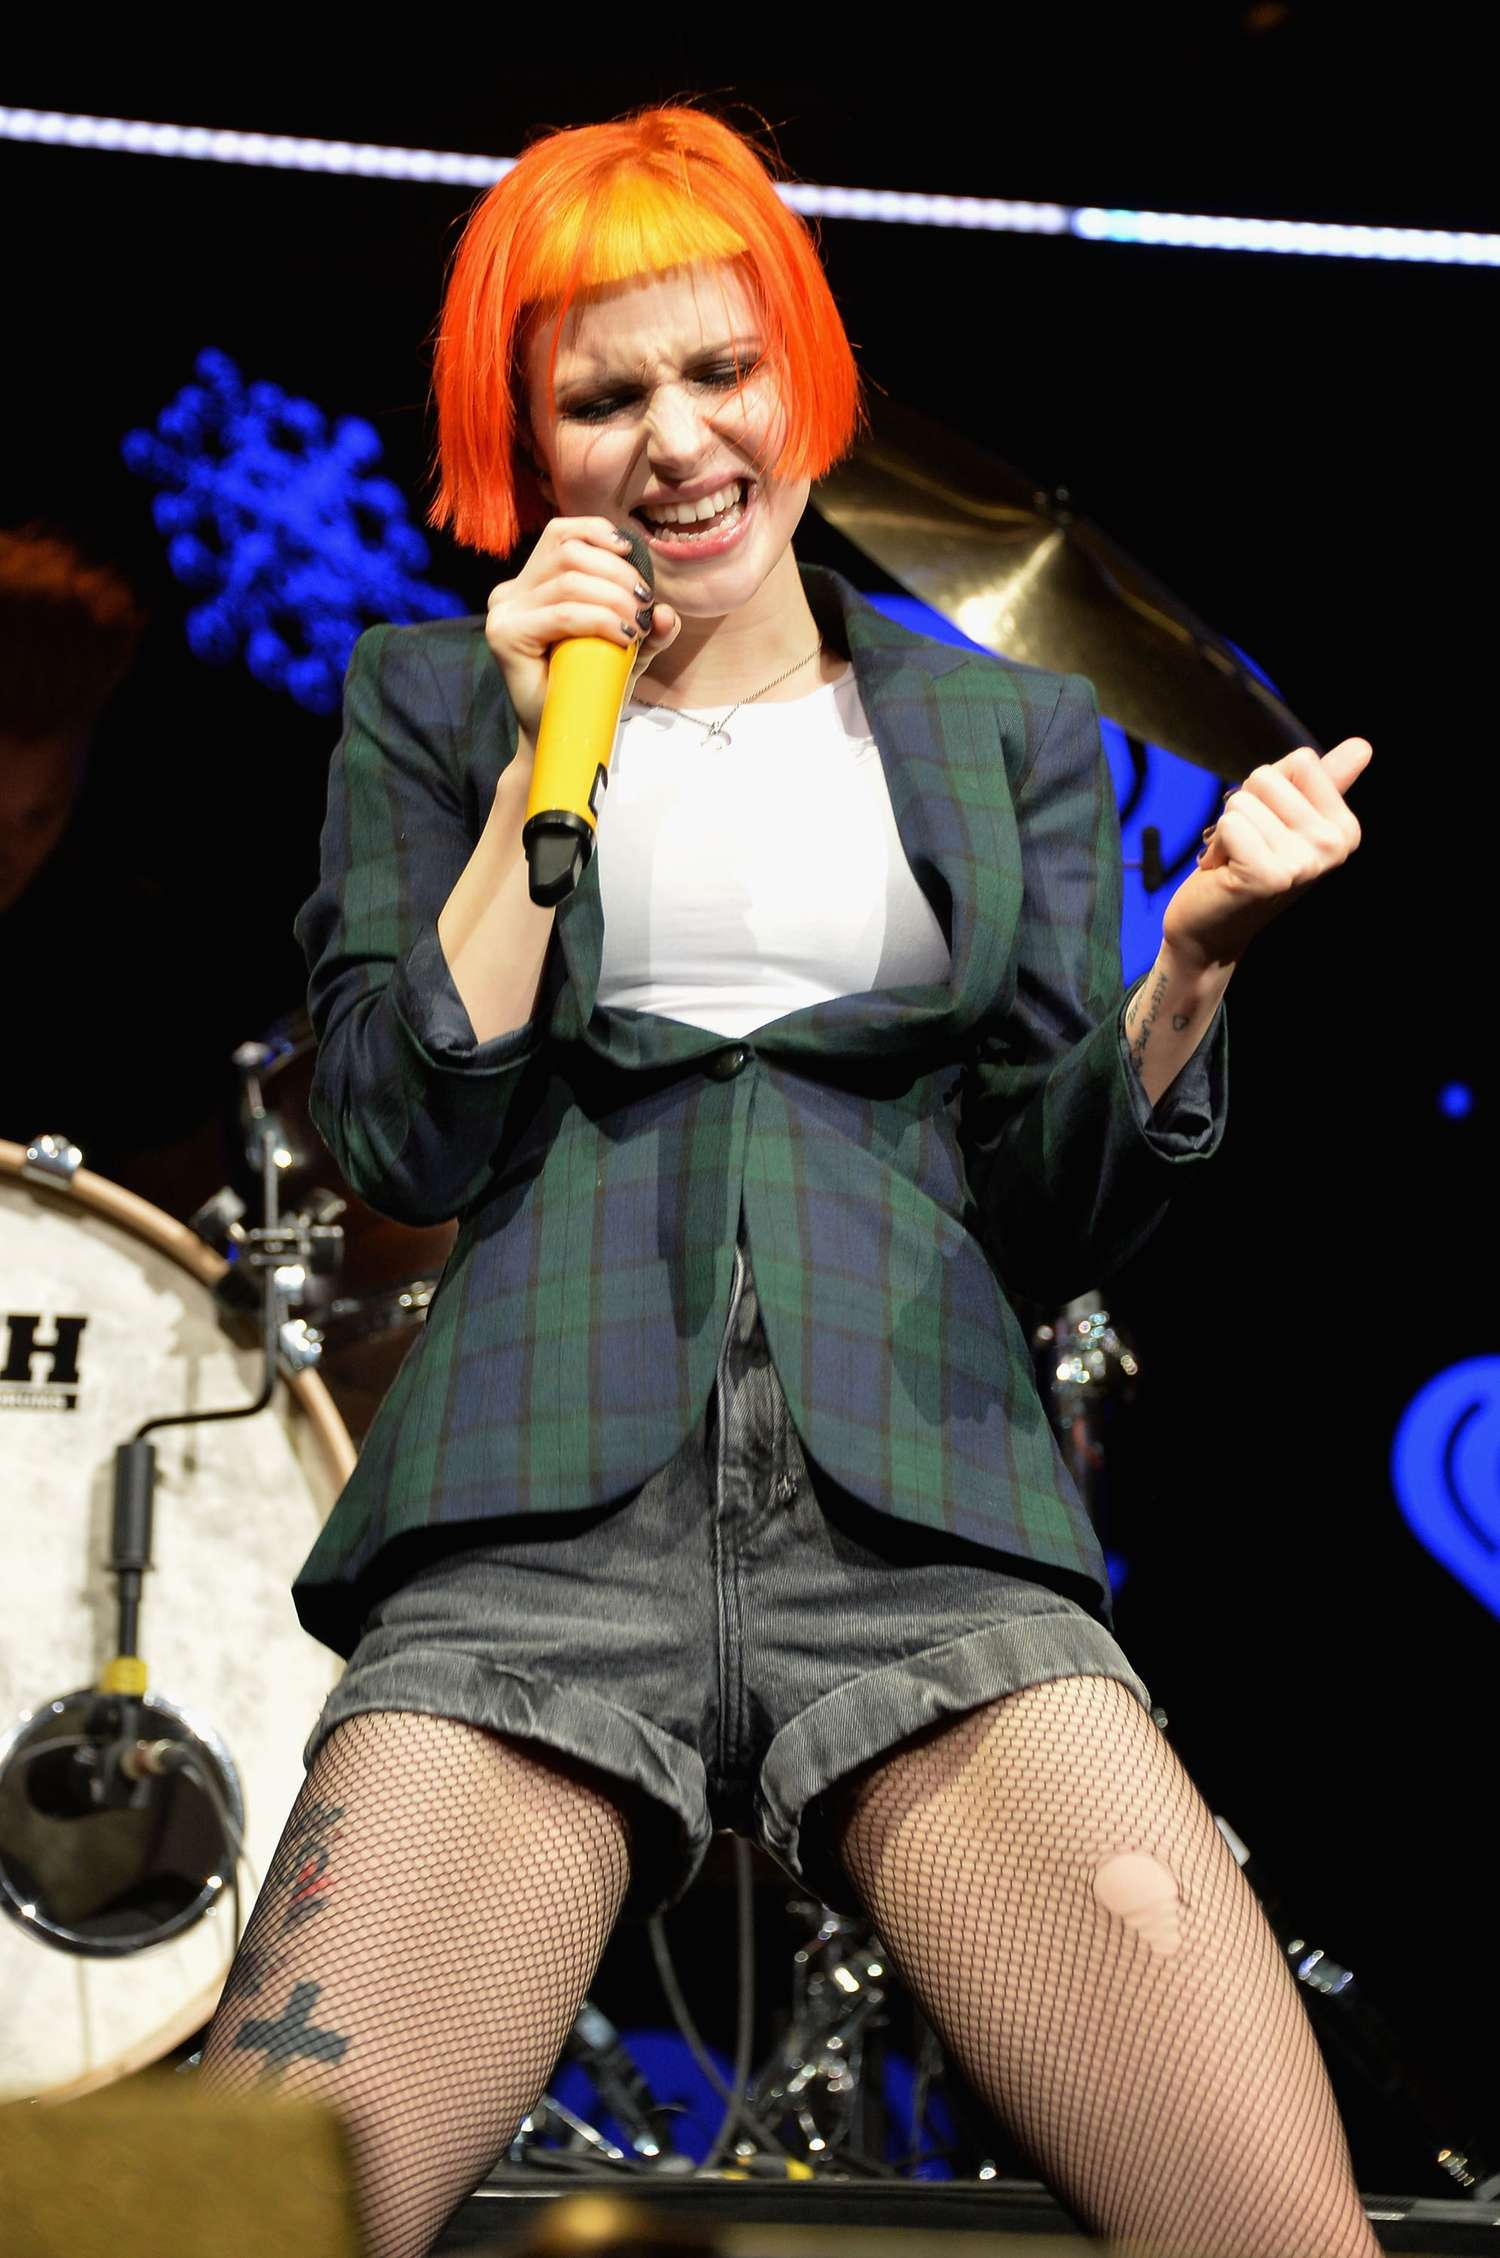 Hayley Williams Performs At Q102 S Jingle Ball In